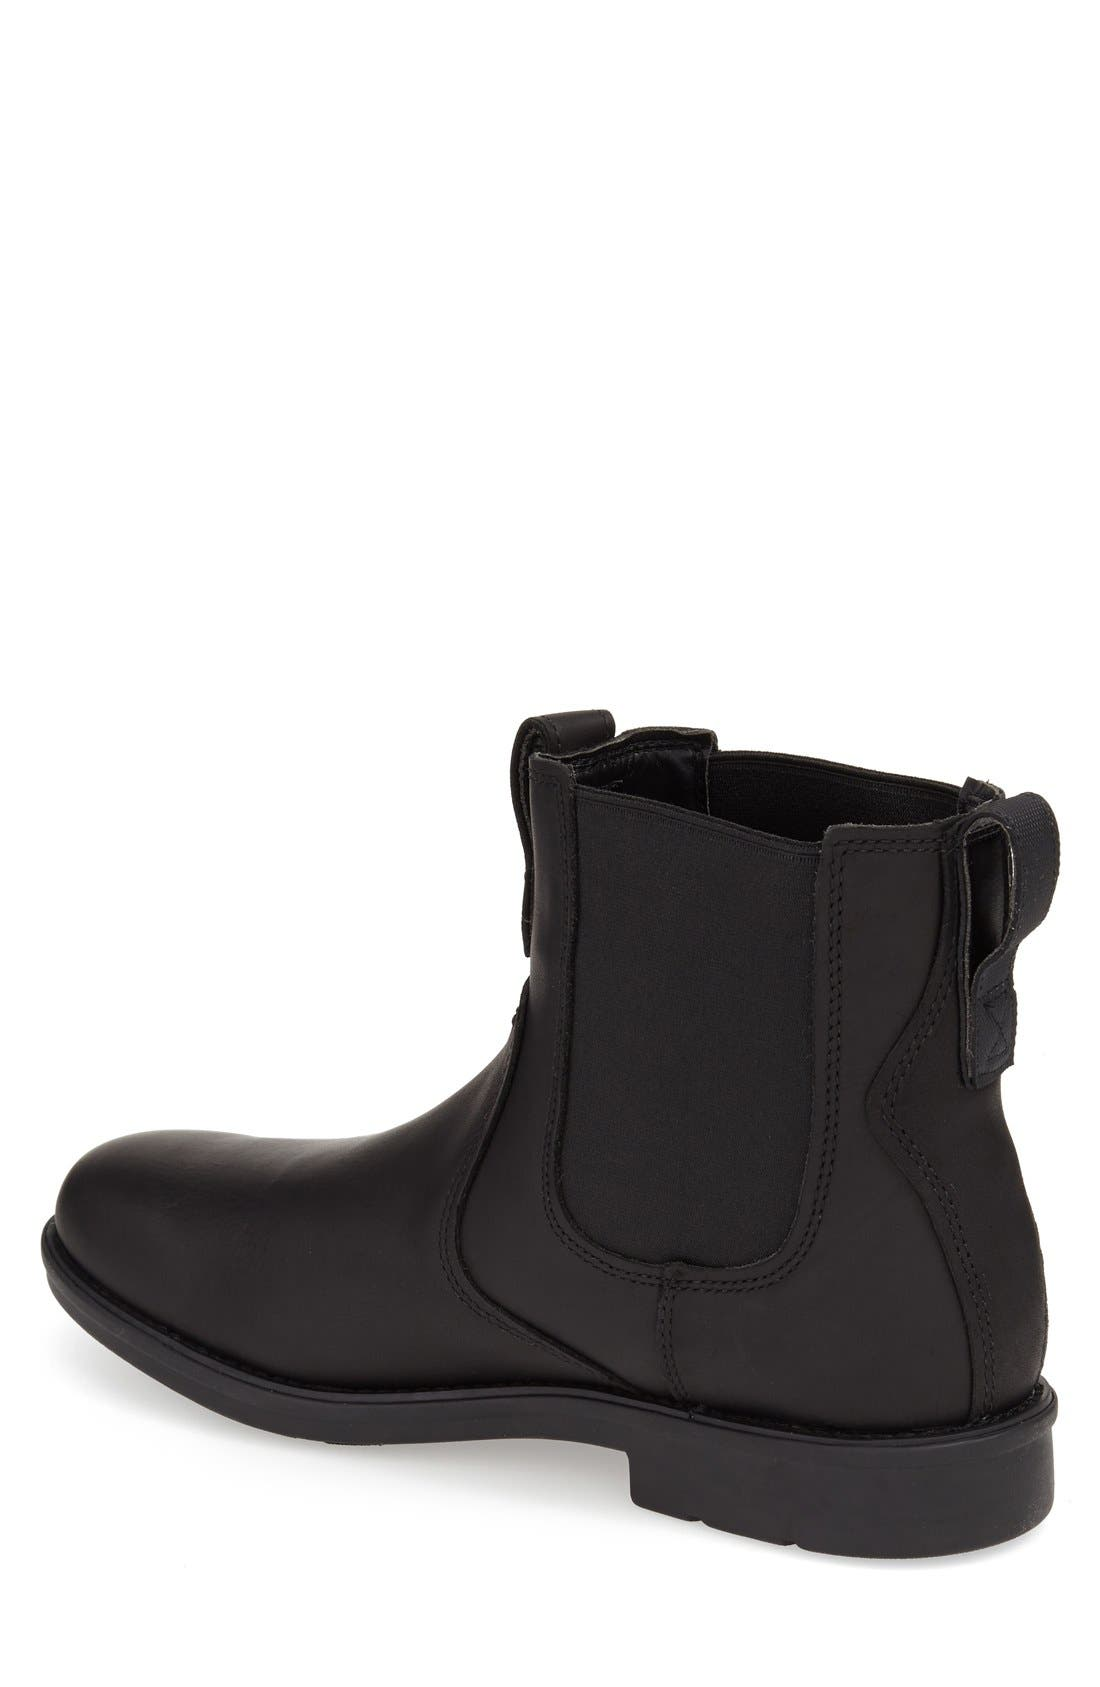 TIMBERLAND,                             'Carter' Chelsea Boot,                             Alternate thumbnail 2, color,                             001